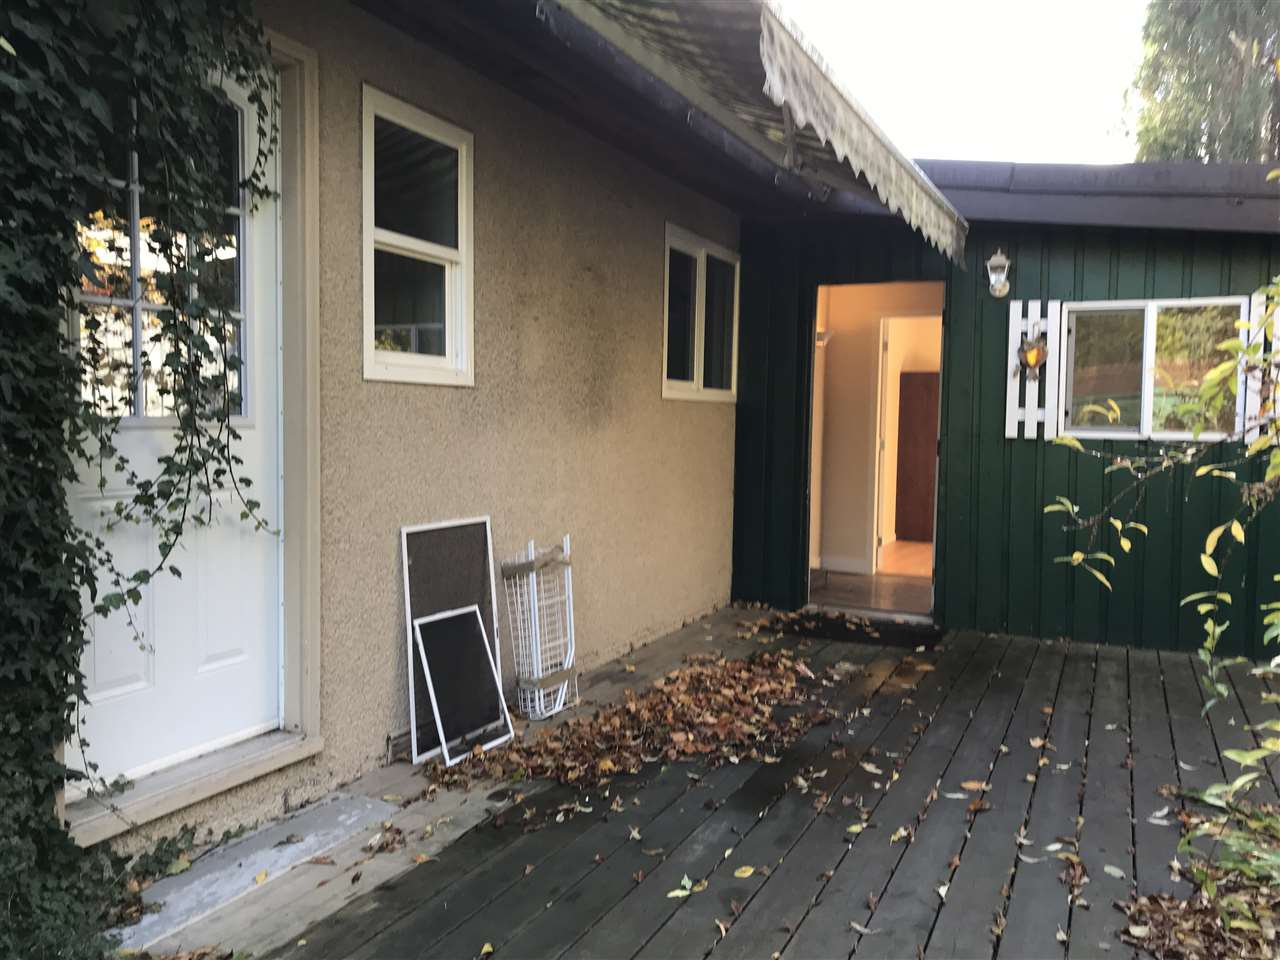 """Photo 6: Photos: 15859 THRIFT Avenue: White Rock House for sale in """"White Rock"""" (South Surrey White Rock)  : MLS®# R2220457"""